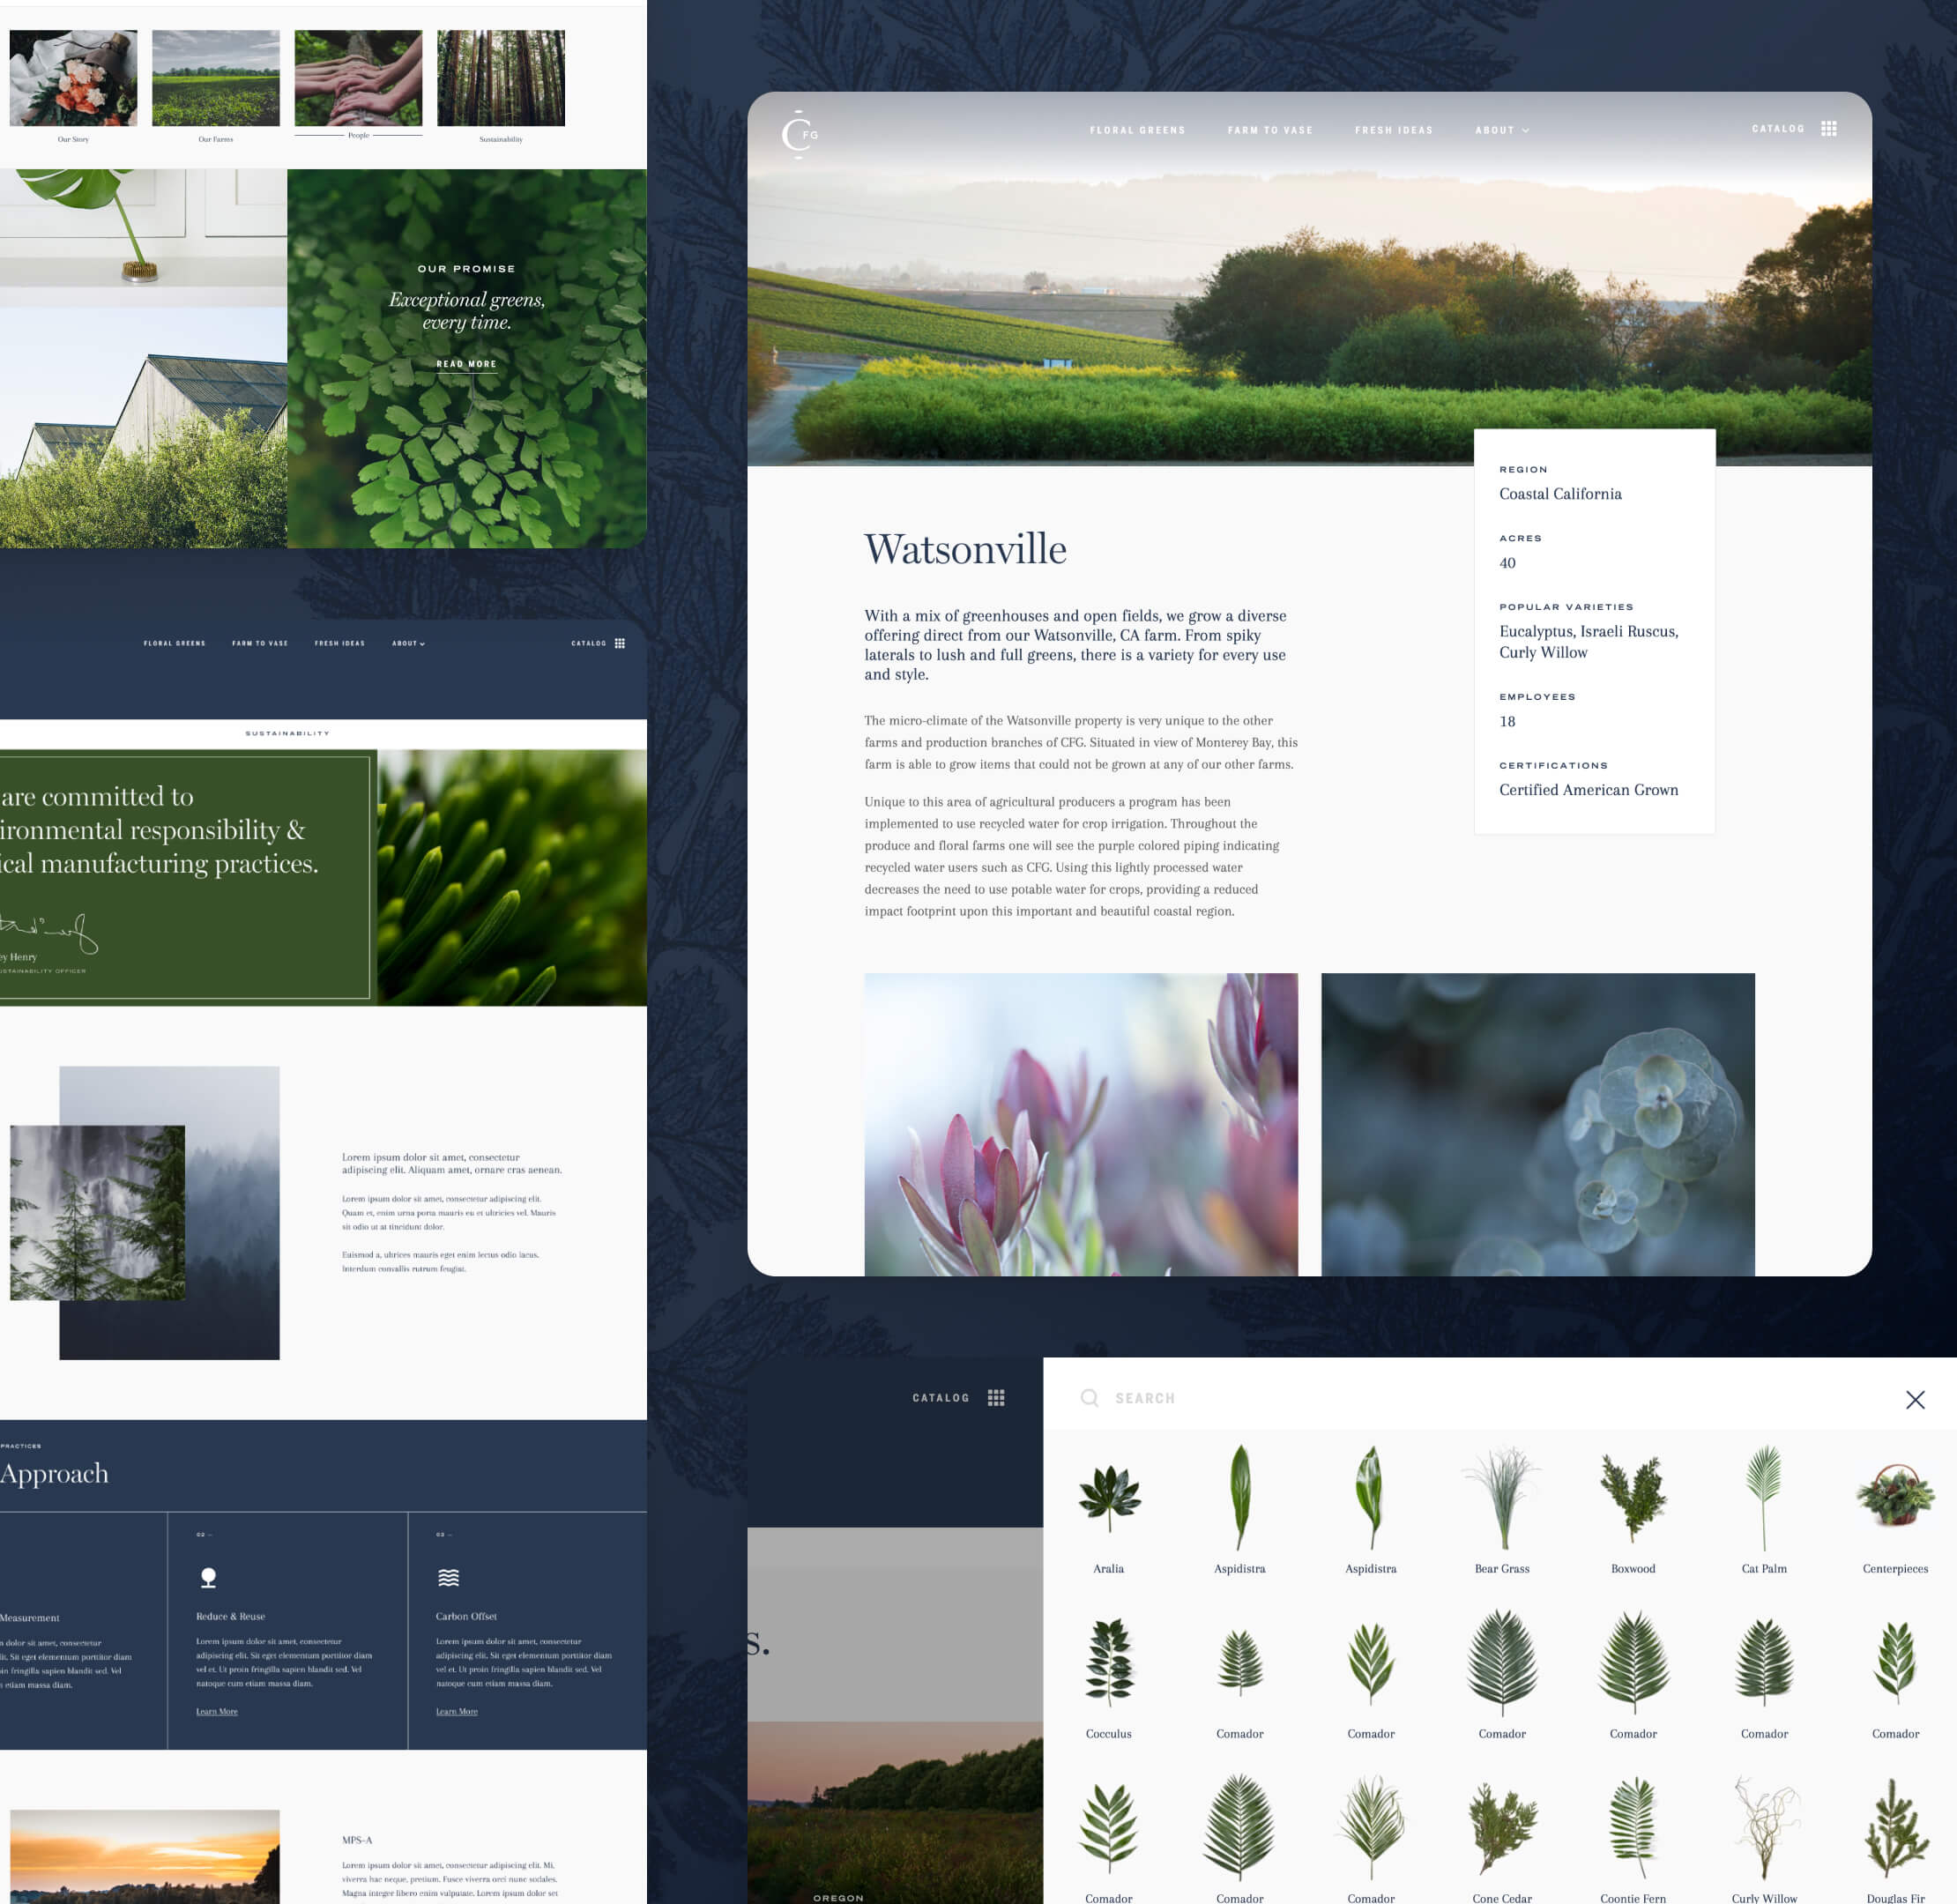 Various screen captures of Continental Floral Green's website interior pages.